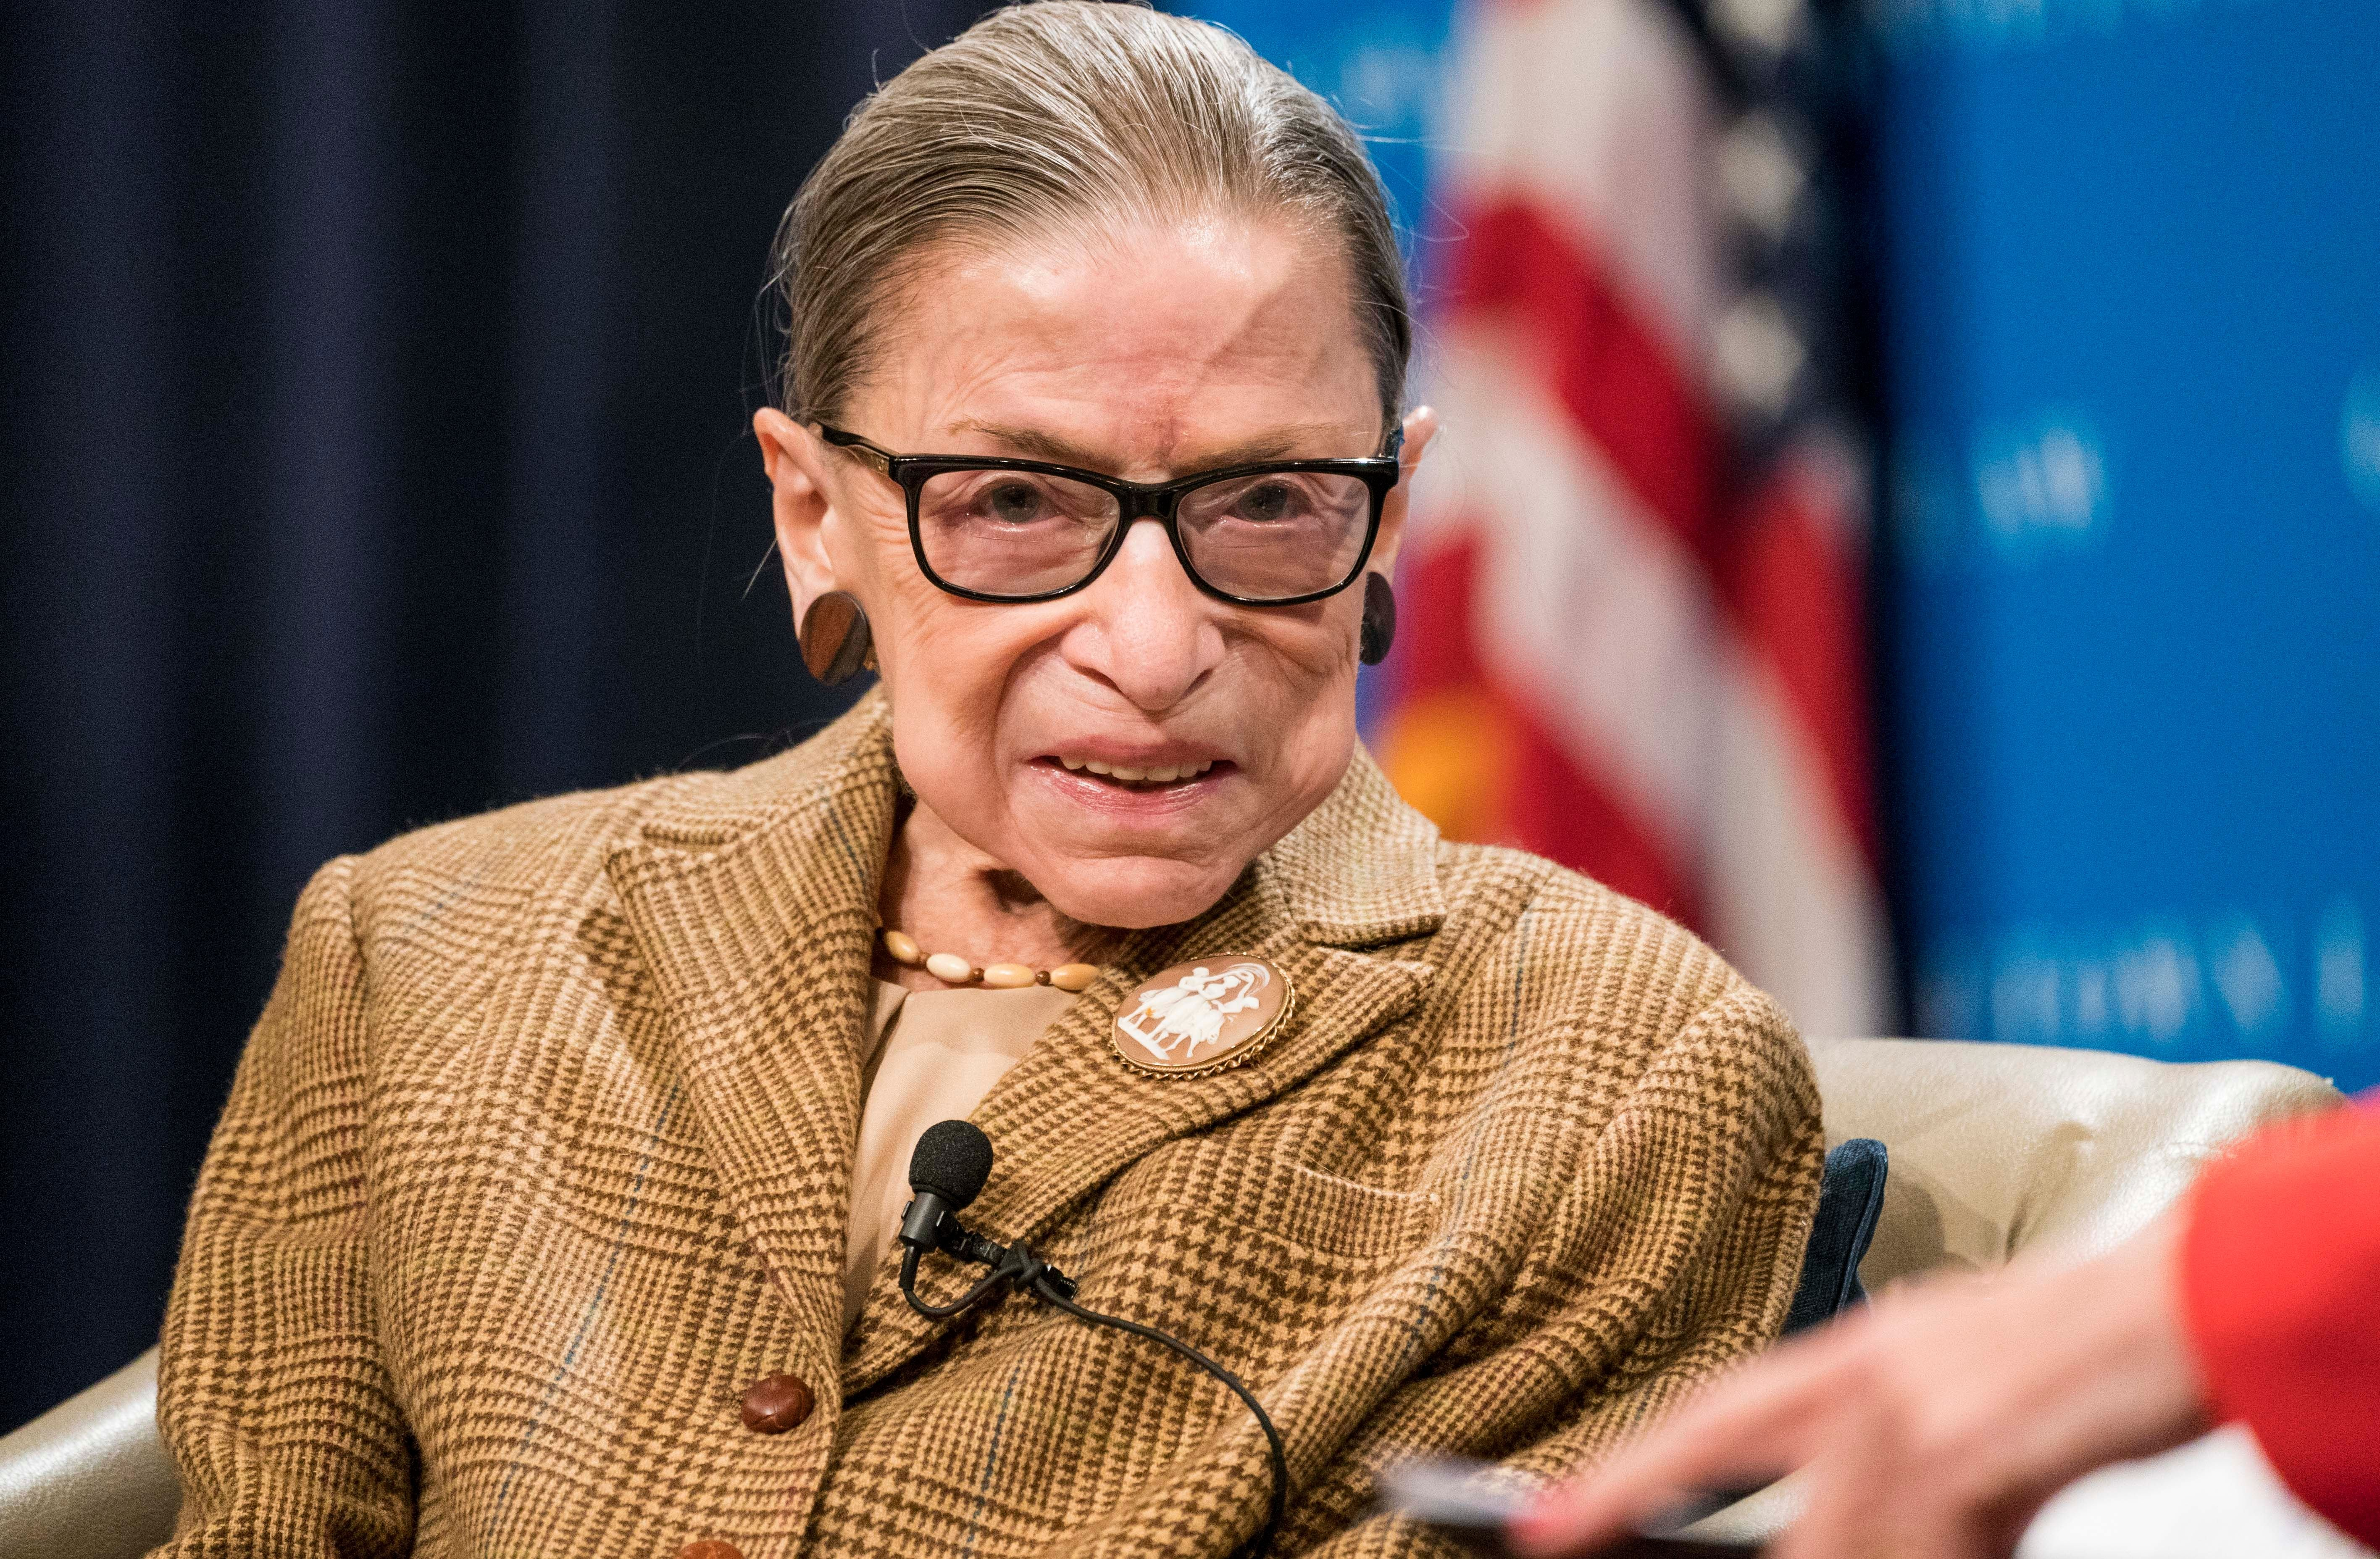 Ruth Bader Ginsburg during a discussion at the Georgetown University Law Center on February 10, 2020 in Washington, DC. | Source: Getty Images